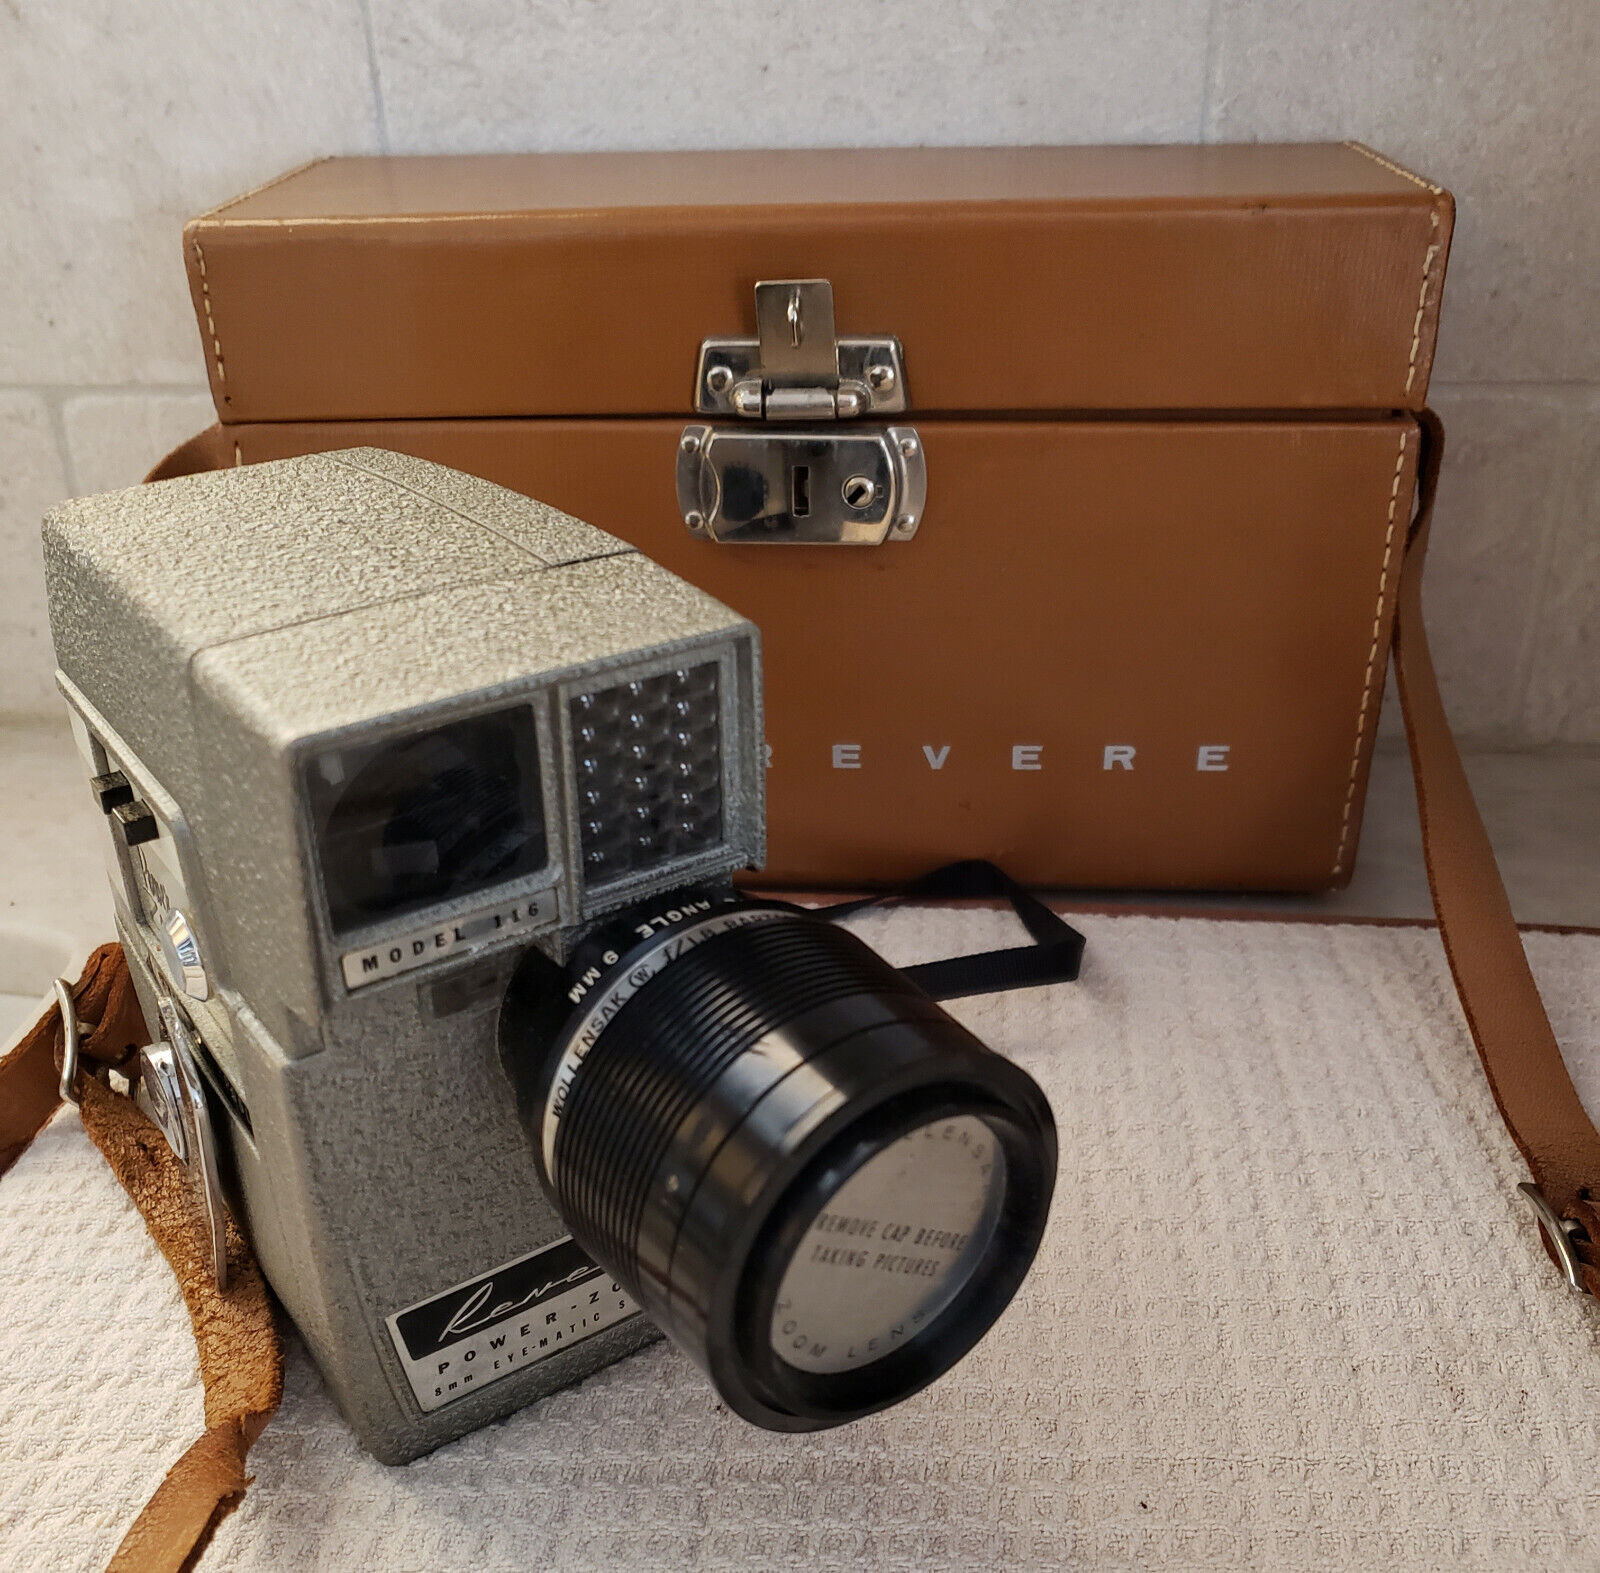 LOT OF TWO VINTAGE 8MM MOVIE CAMERAS, 1950s, 1960s - BROWNIE REVERE - $15.00